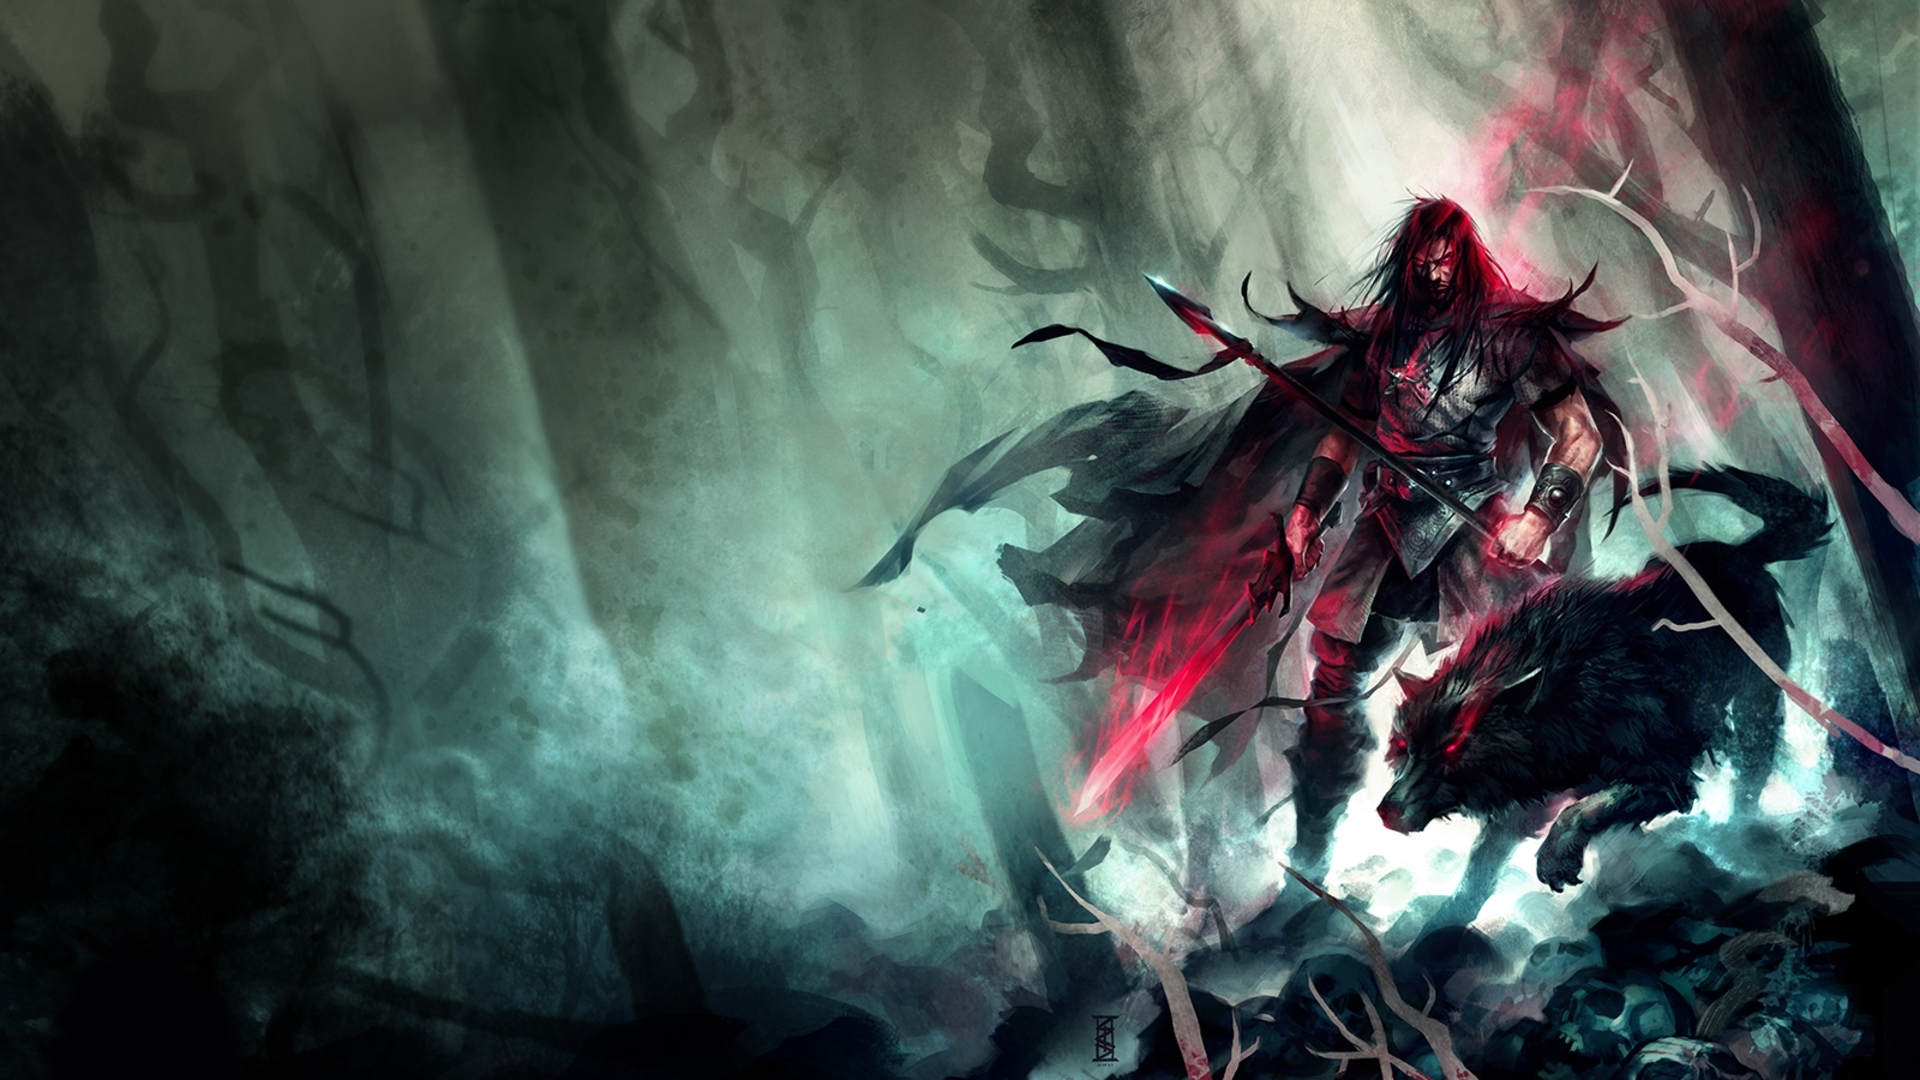 warrior full hd wallpaper and background image | 1920x1080 | id:182624